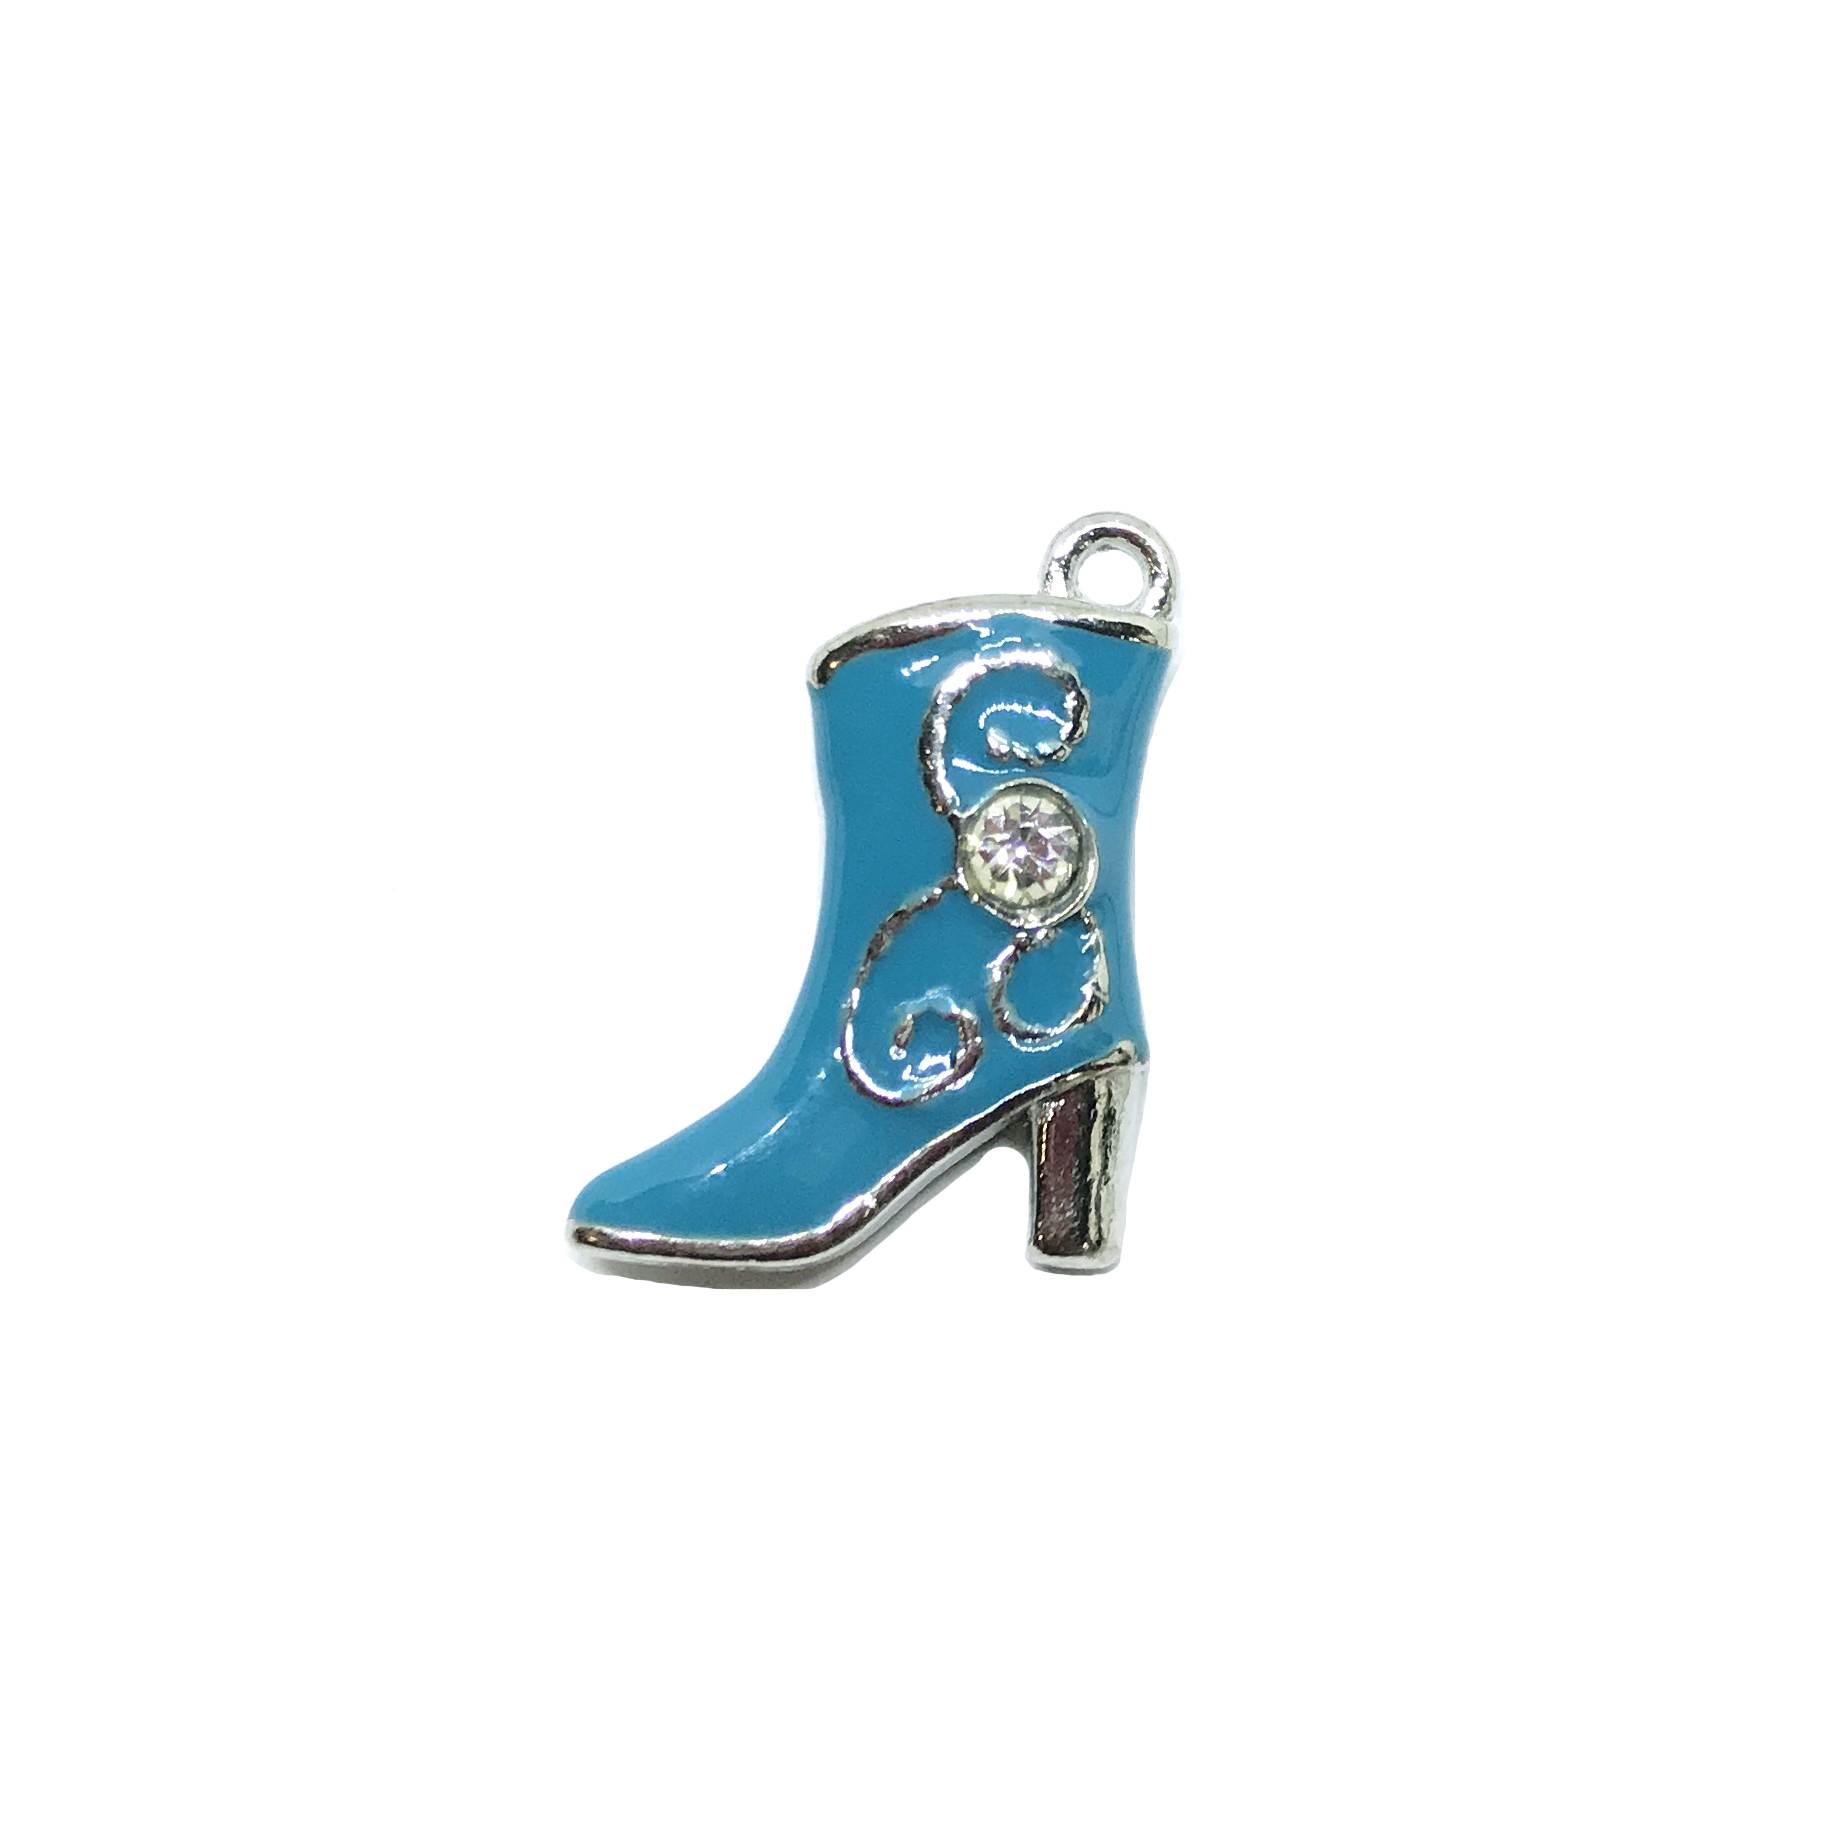 cowboy boot, turquoise boot charm, 01543, boots, charms, silver, silver charms, silver-tone, double-sided, puffy charm, 3-D, B'sue Boutiques, design embellishment, boot, blue, turquoise